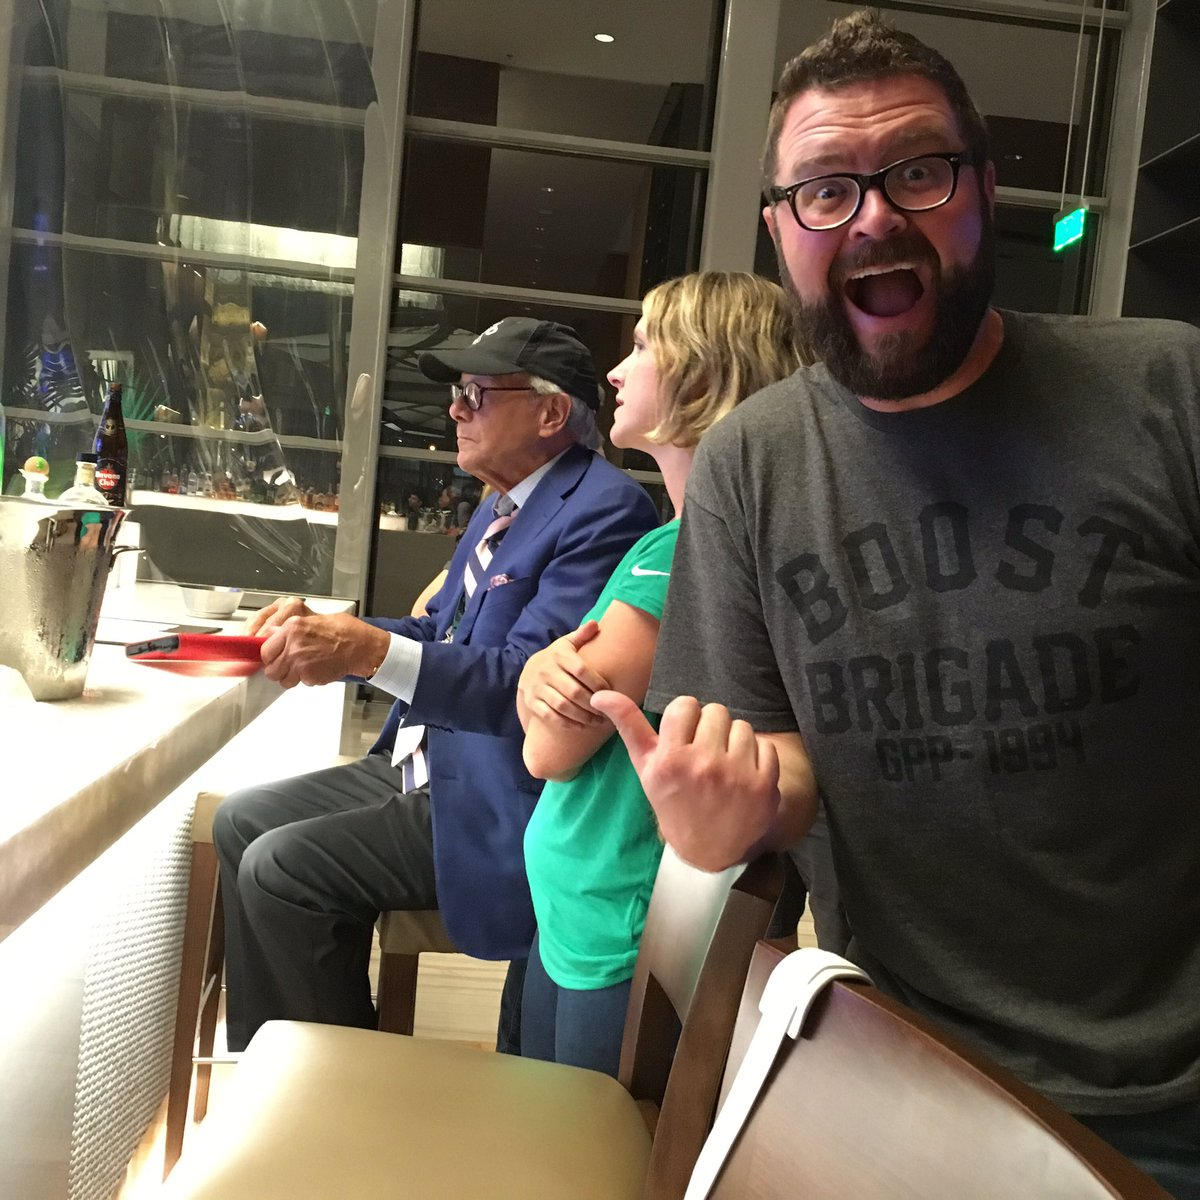 Are you serious! #TomBrokaw @RutledgeWood @nbc @NBCOlympics #Rio2016 https://t.co/Fo9Bxa4XC3